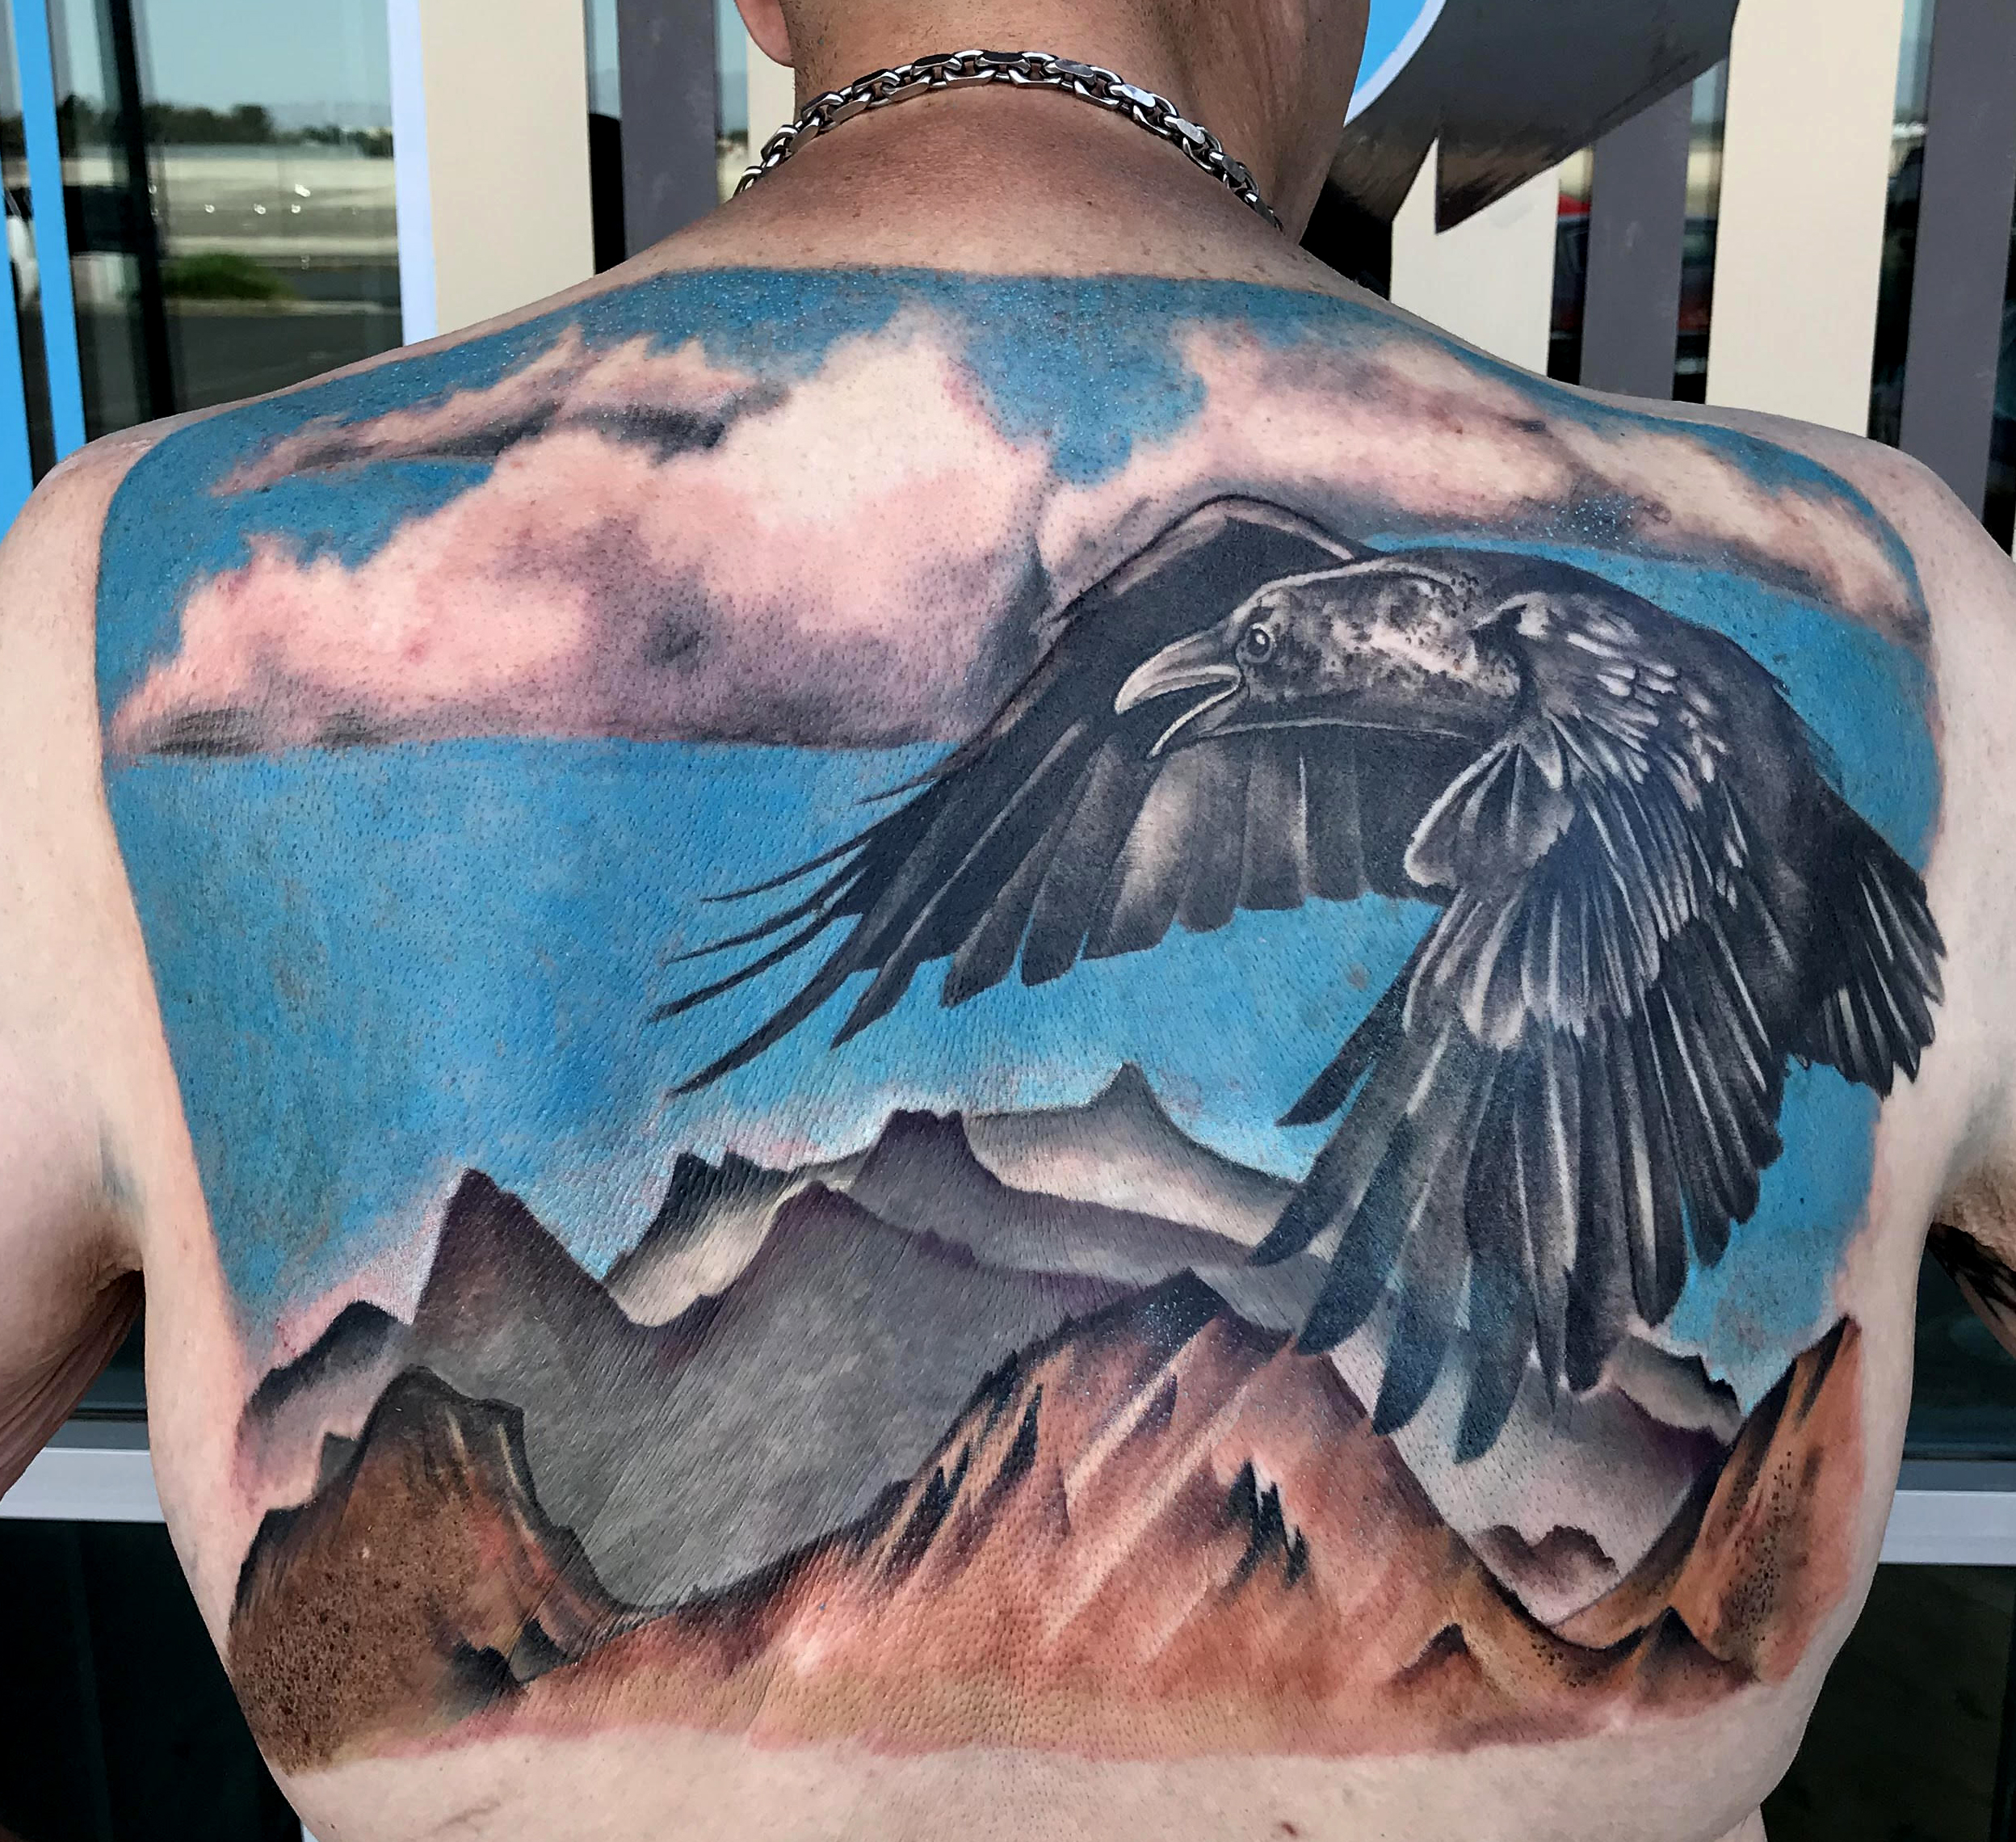 Coverup Tattoo by Krystof